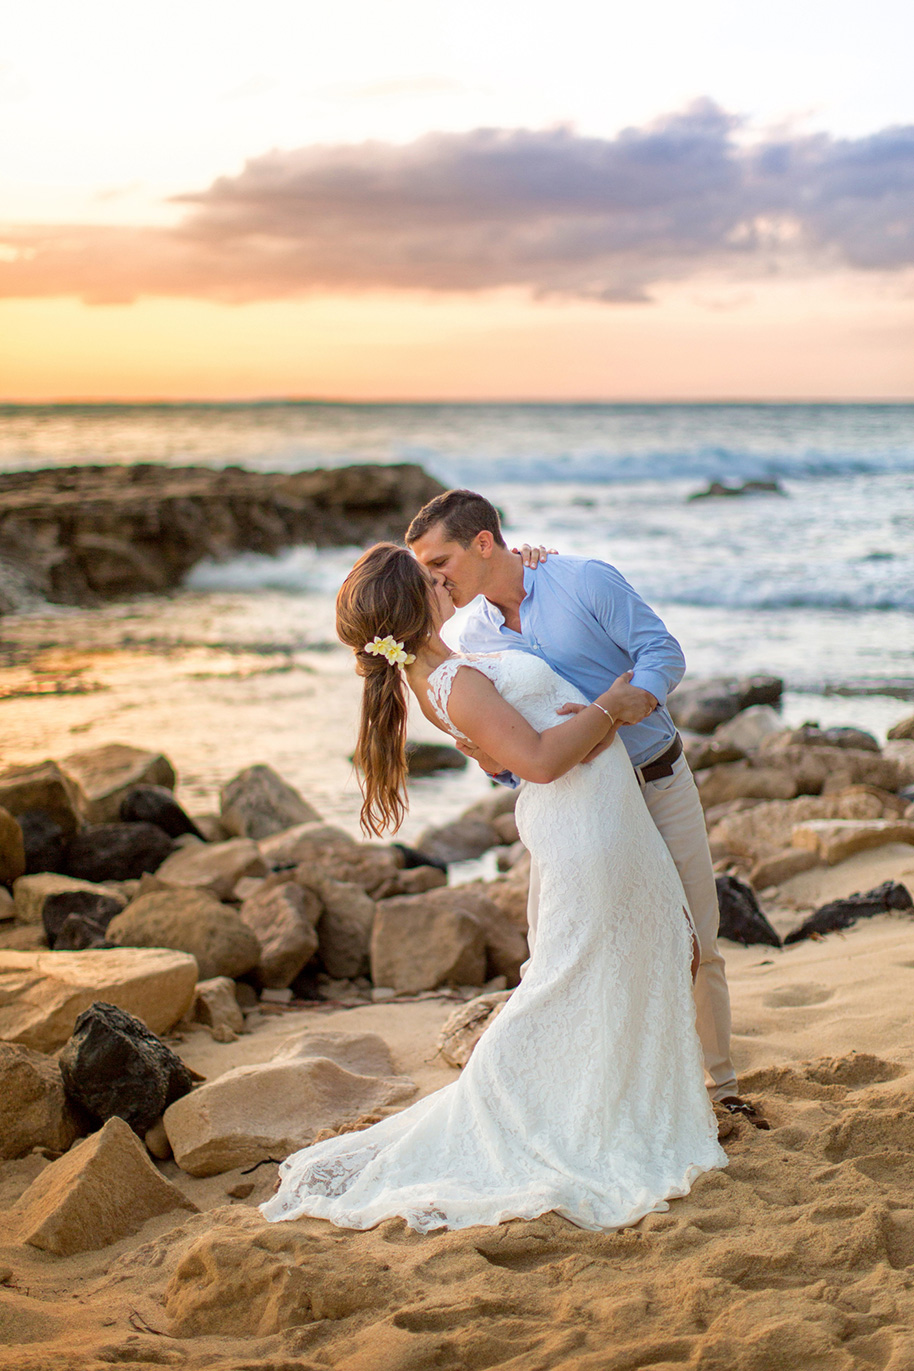 Lanikuhonua-Wedding-040616-36